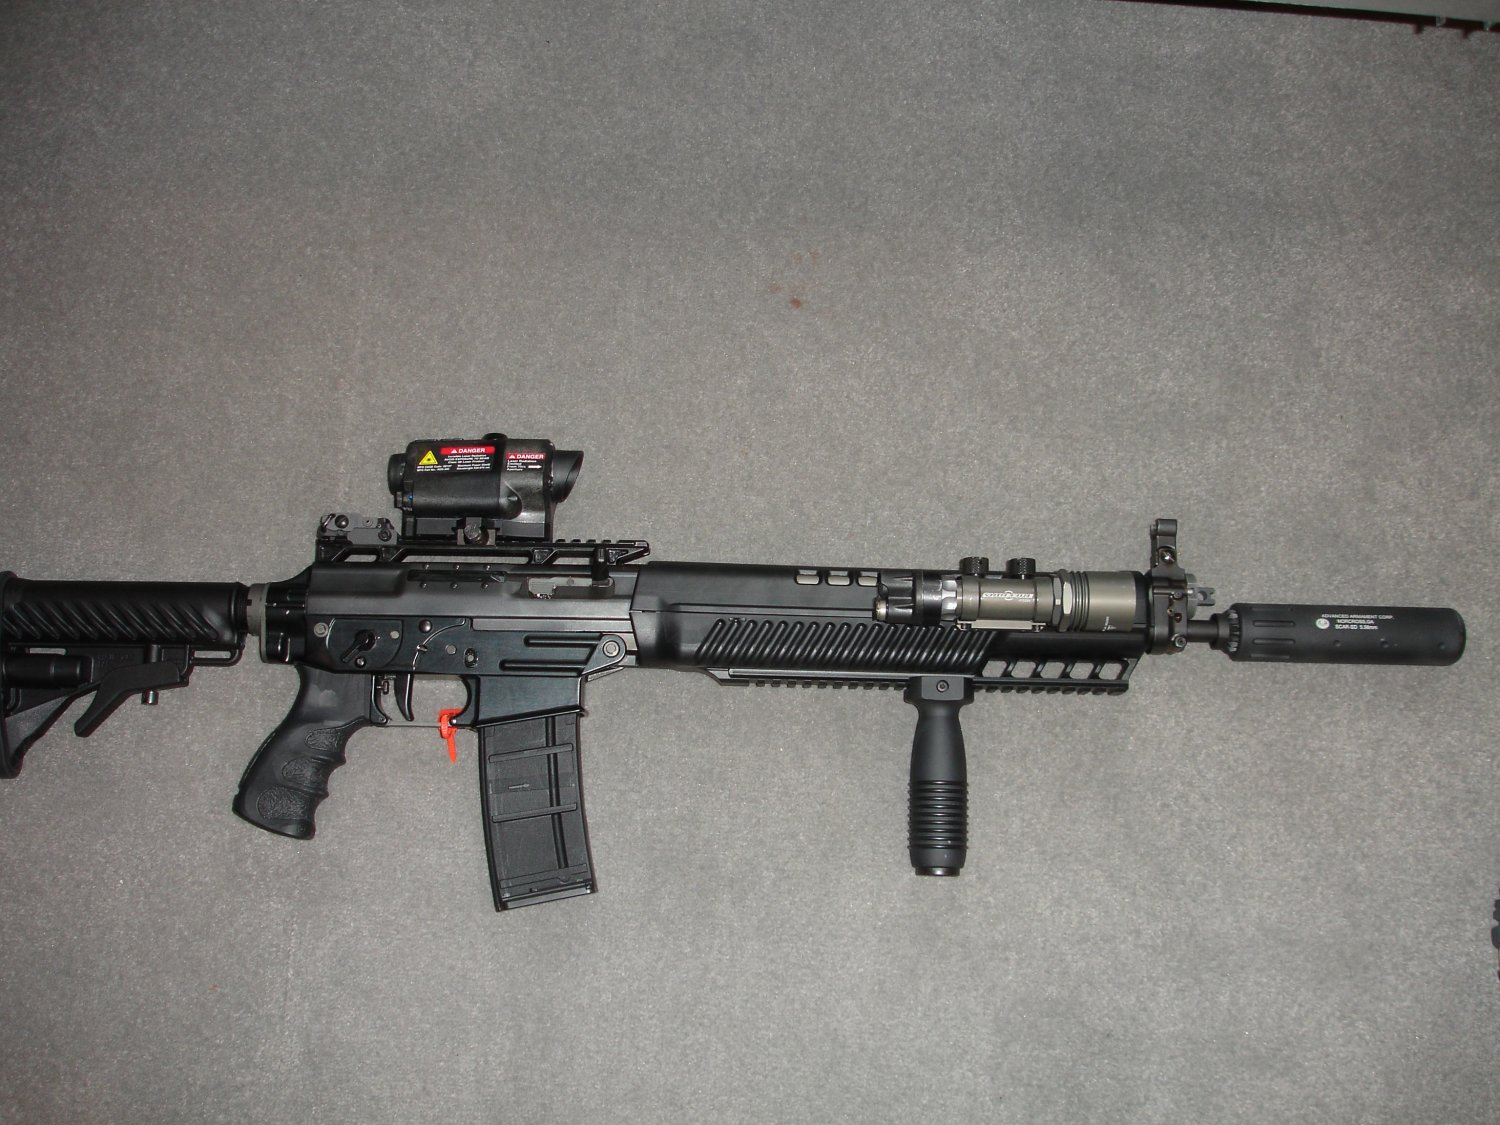 SHOT%20Show%202006%20 %20SIG%20SG556%20Rifle 1%20%28small%29 <!  :en  >SIG 556 SWAT Gas Piston Driven Tactical Rifle/Carbine/Subcarbine<!  :  >